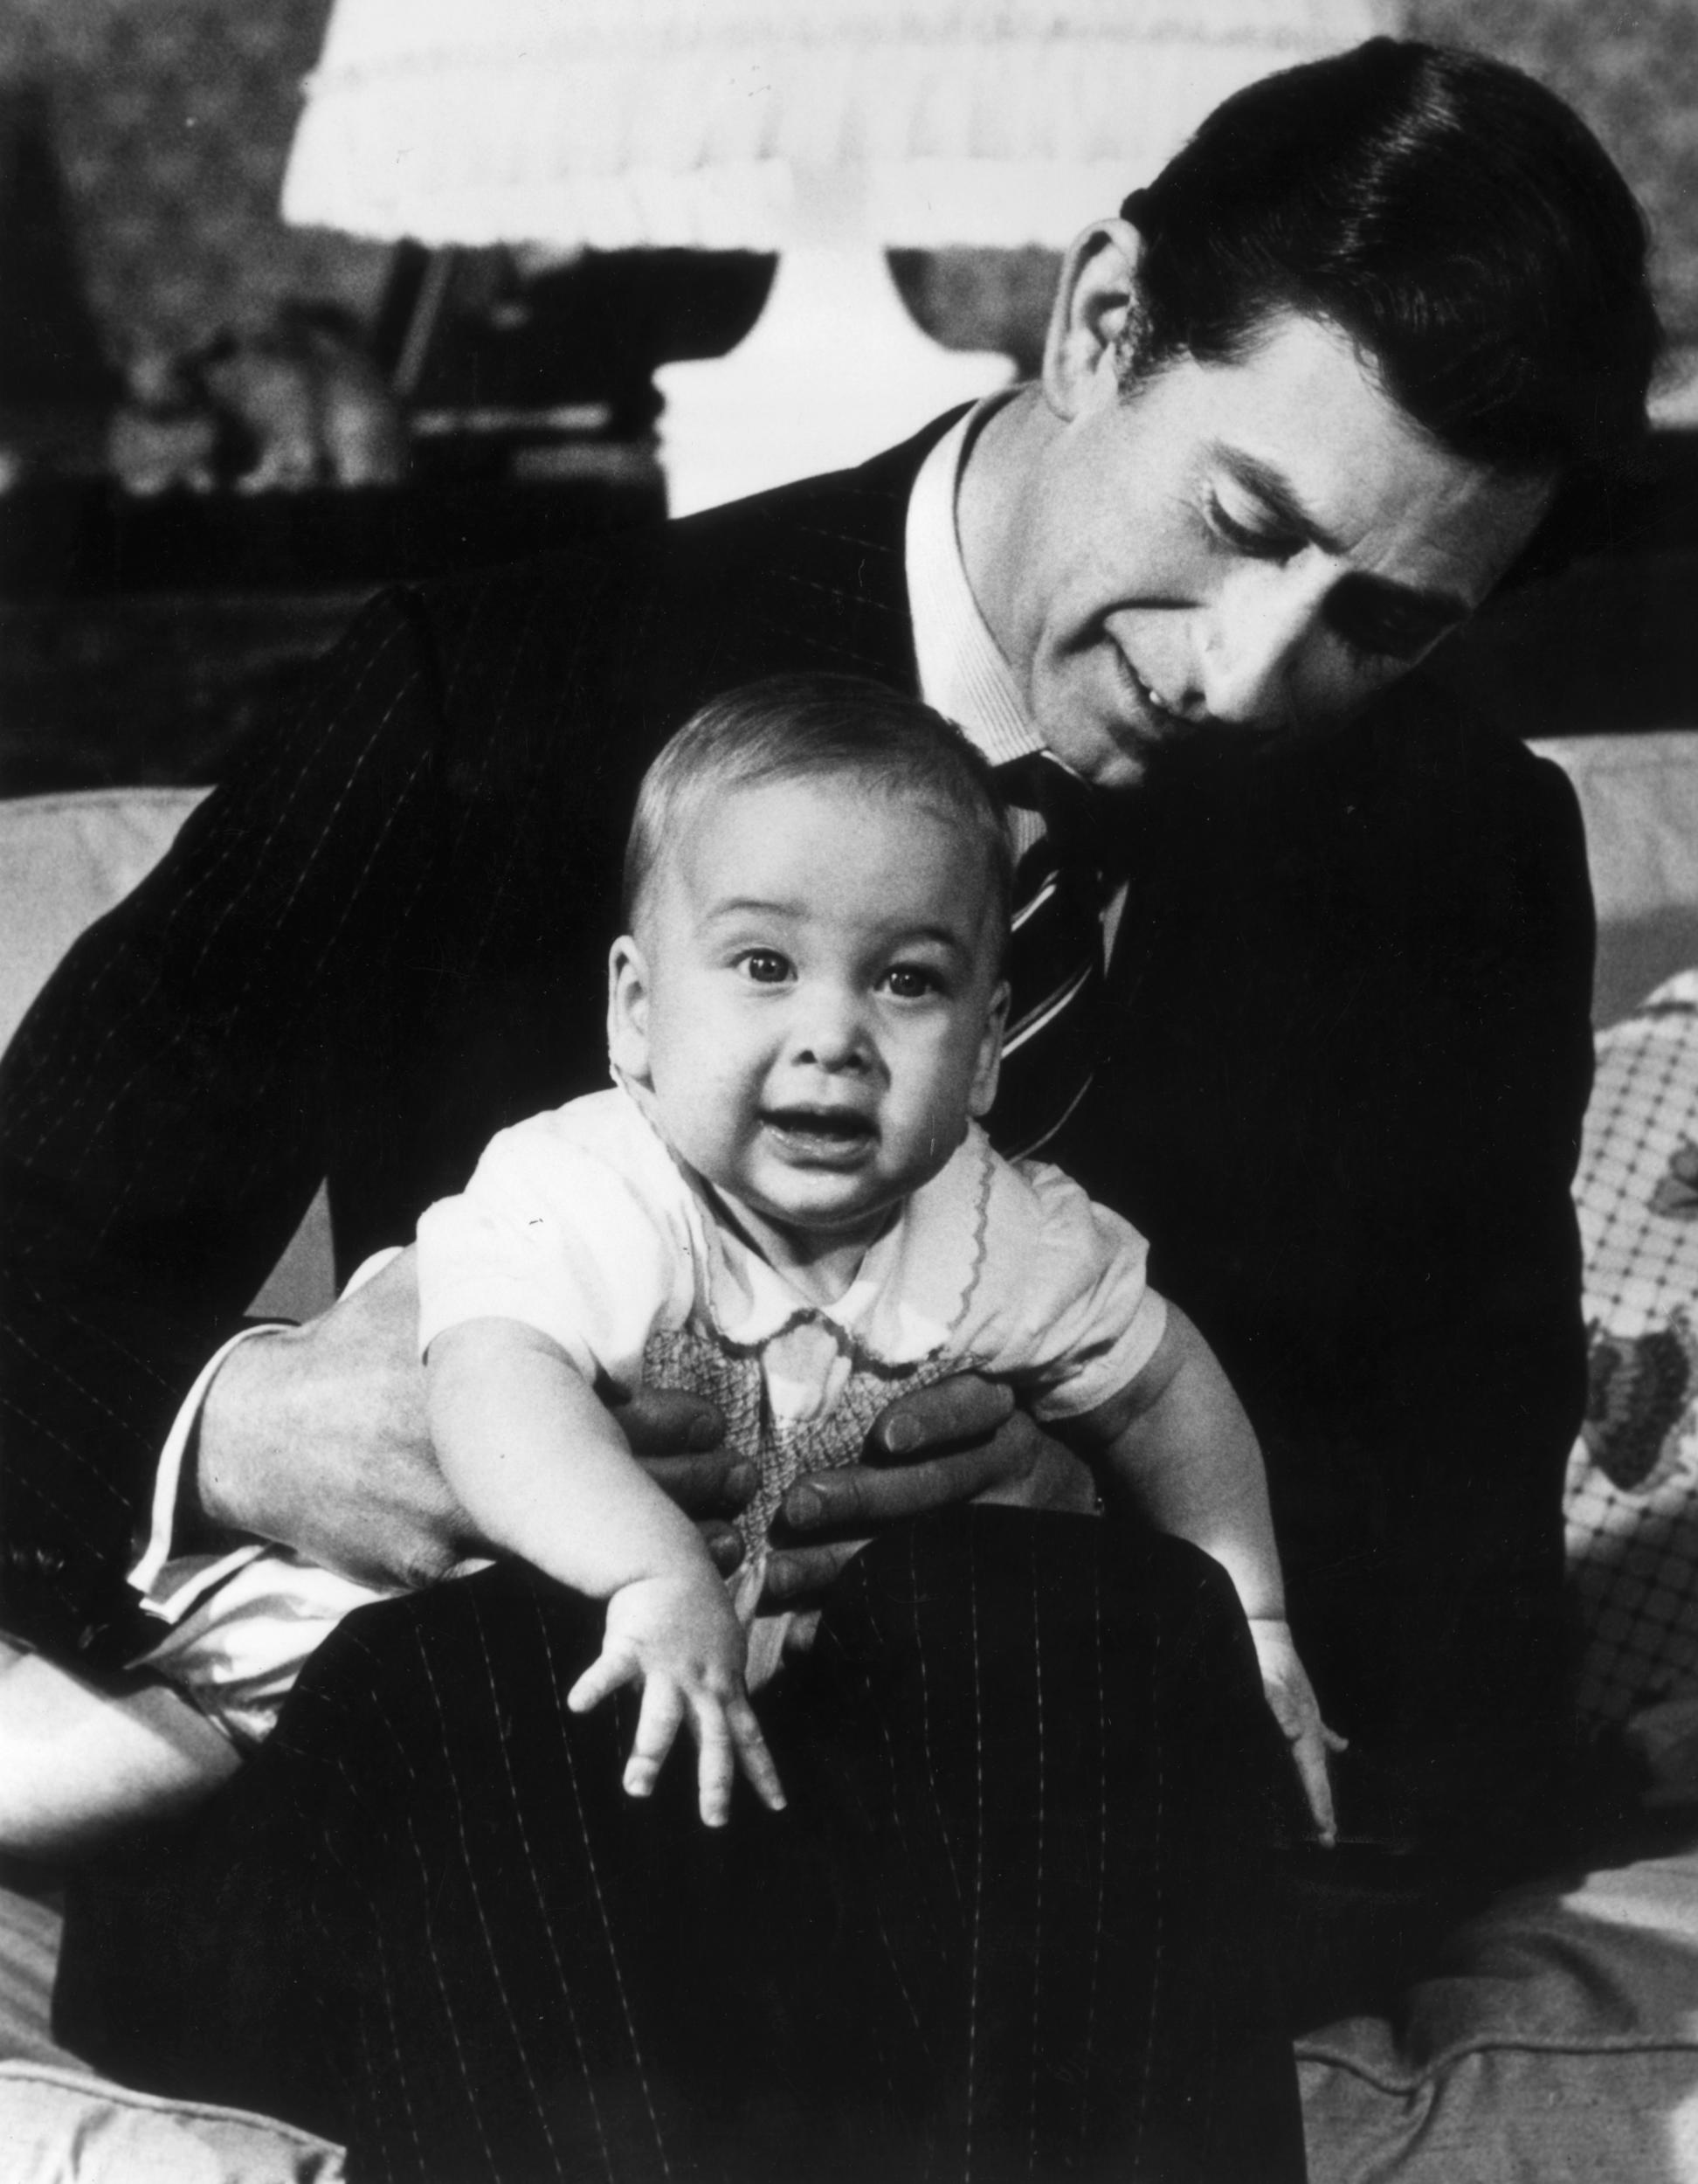 22nd December 1982:  Prince Charles with his baby son, Prince William at Kensington Palace, London.  (Photo by Keystone/Getty Images)